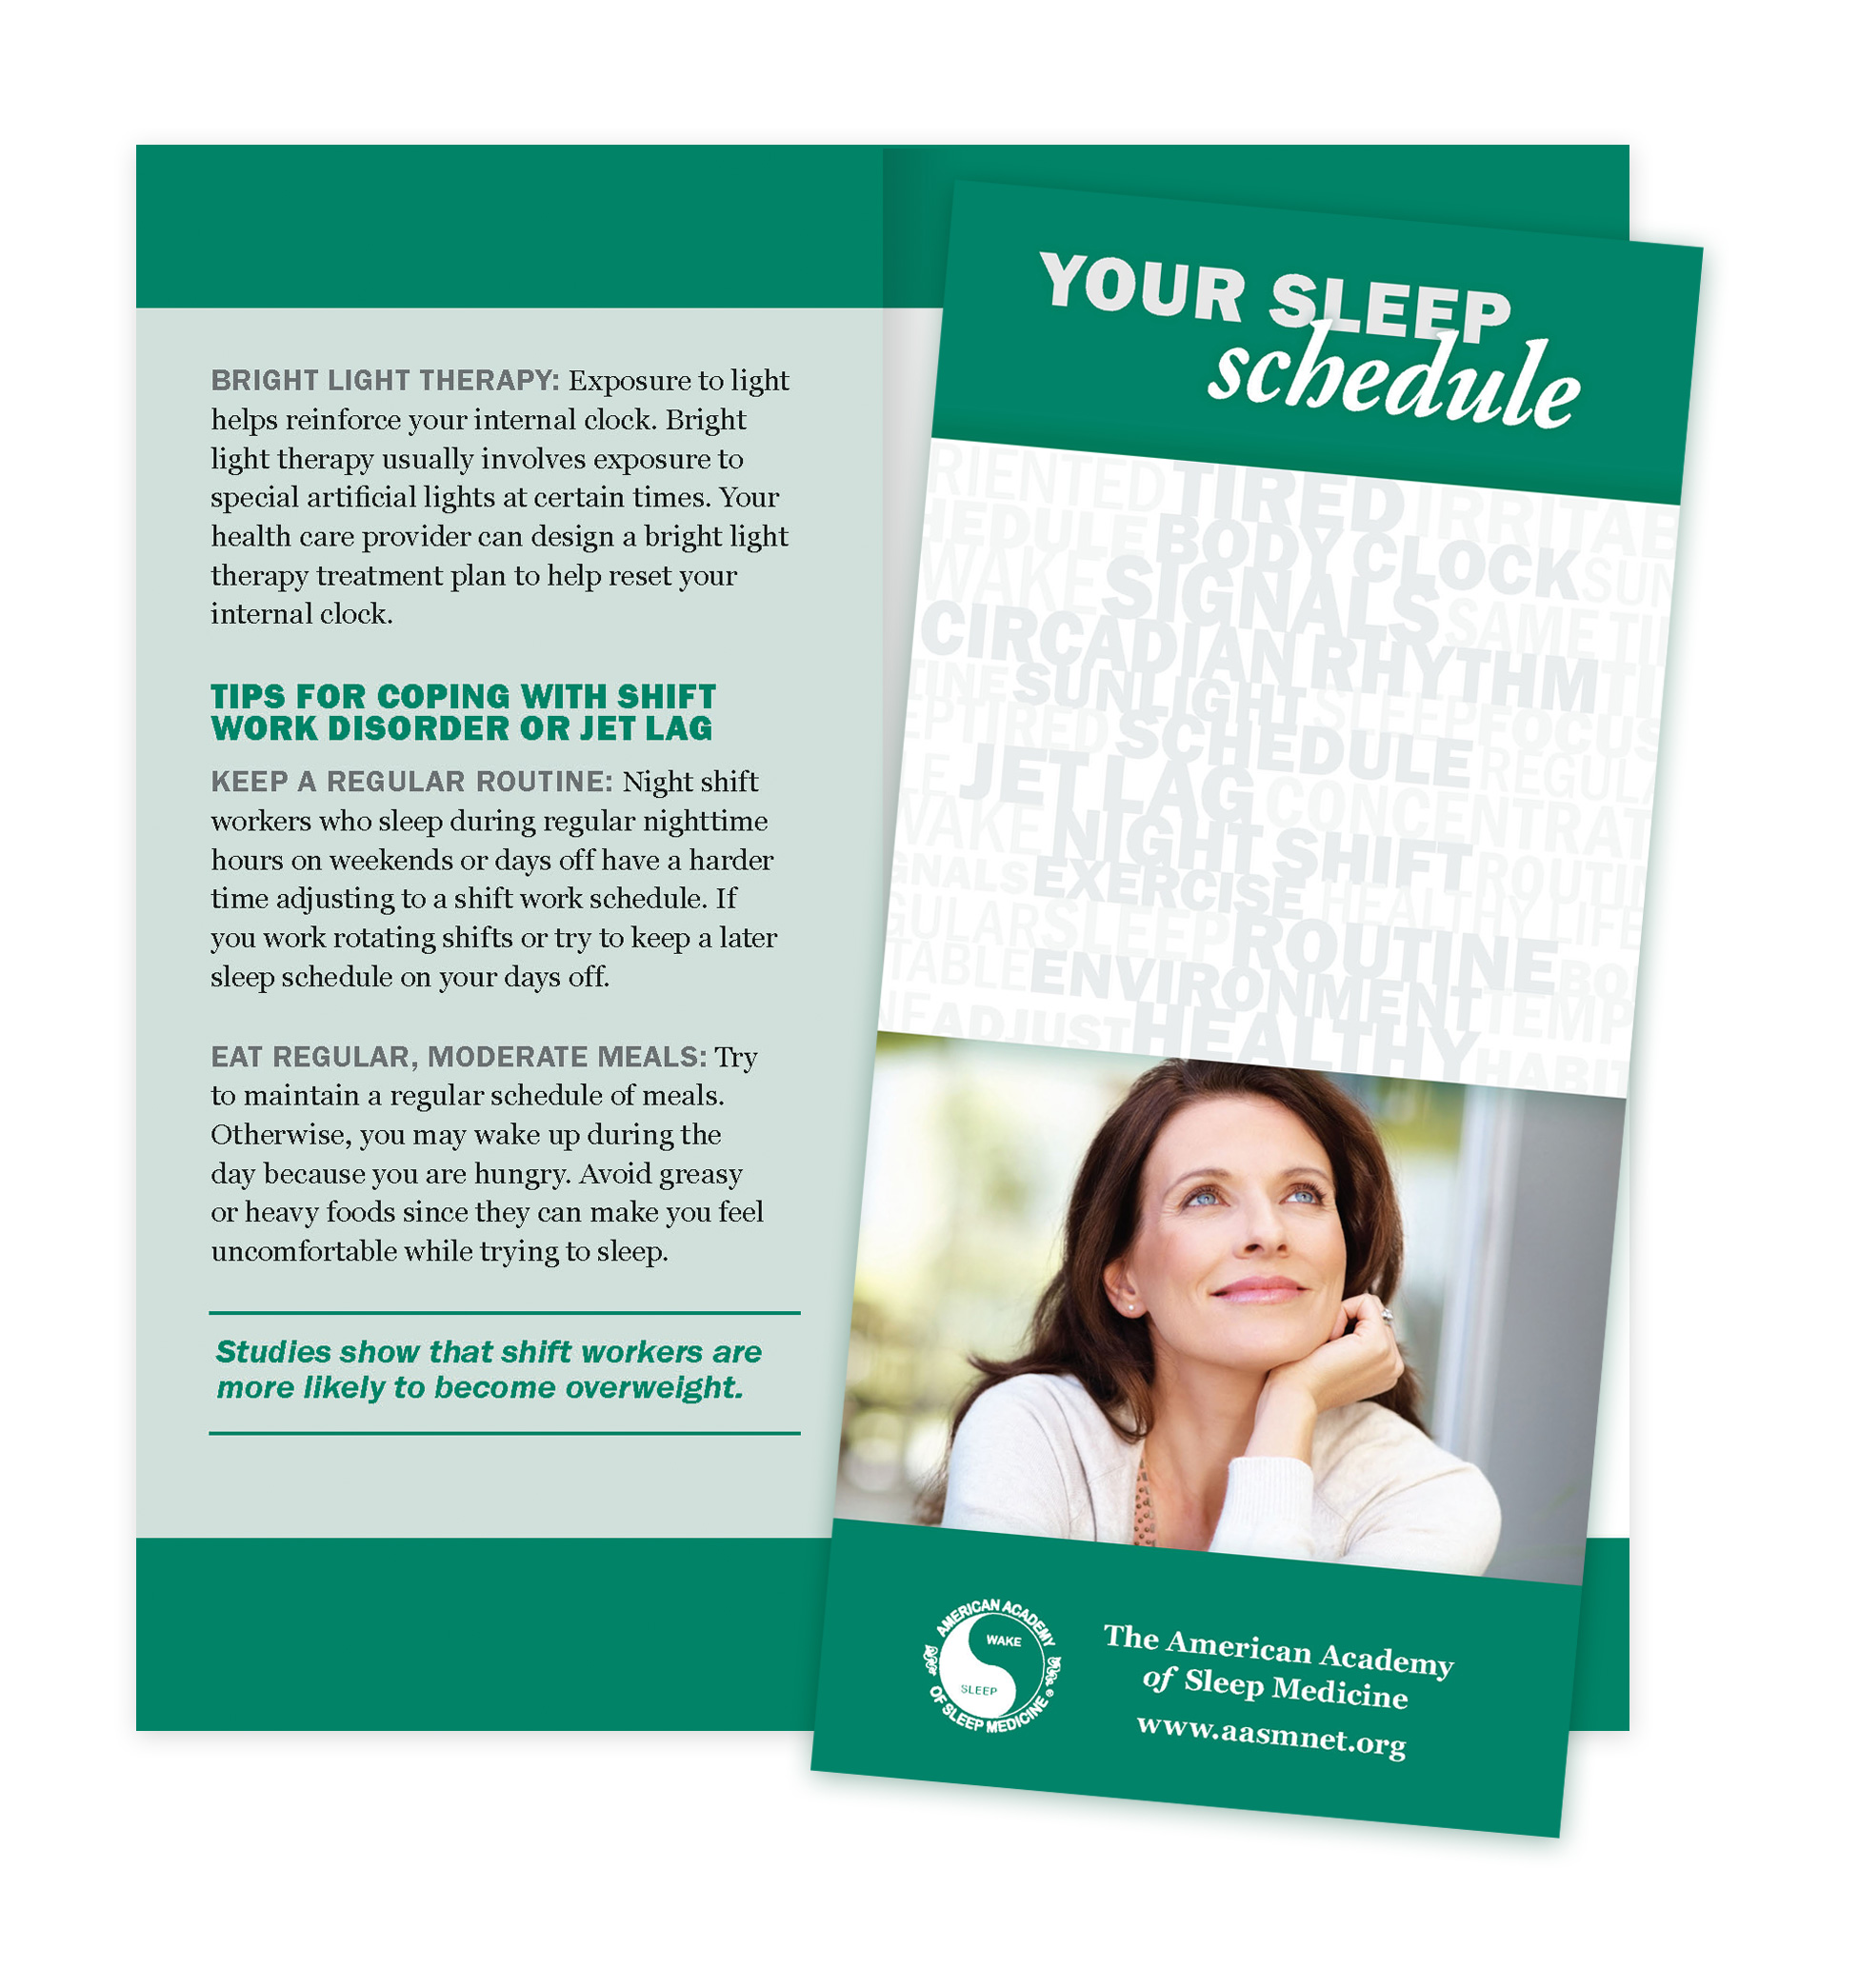 Your Sleep Schedule Patient Education Brochures (50 brochures)